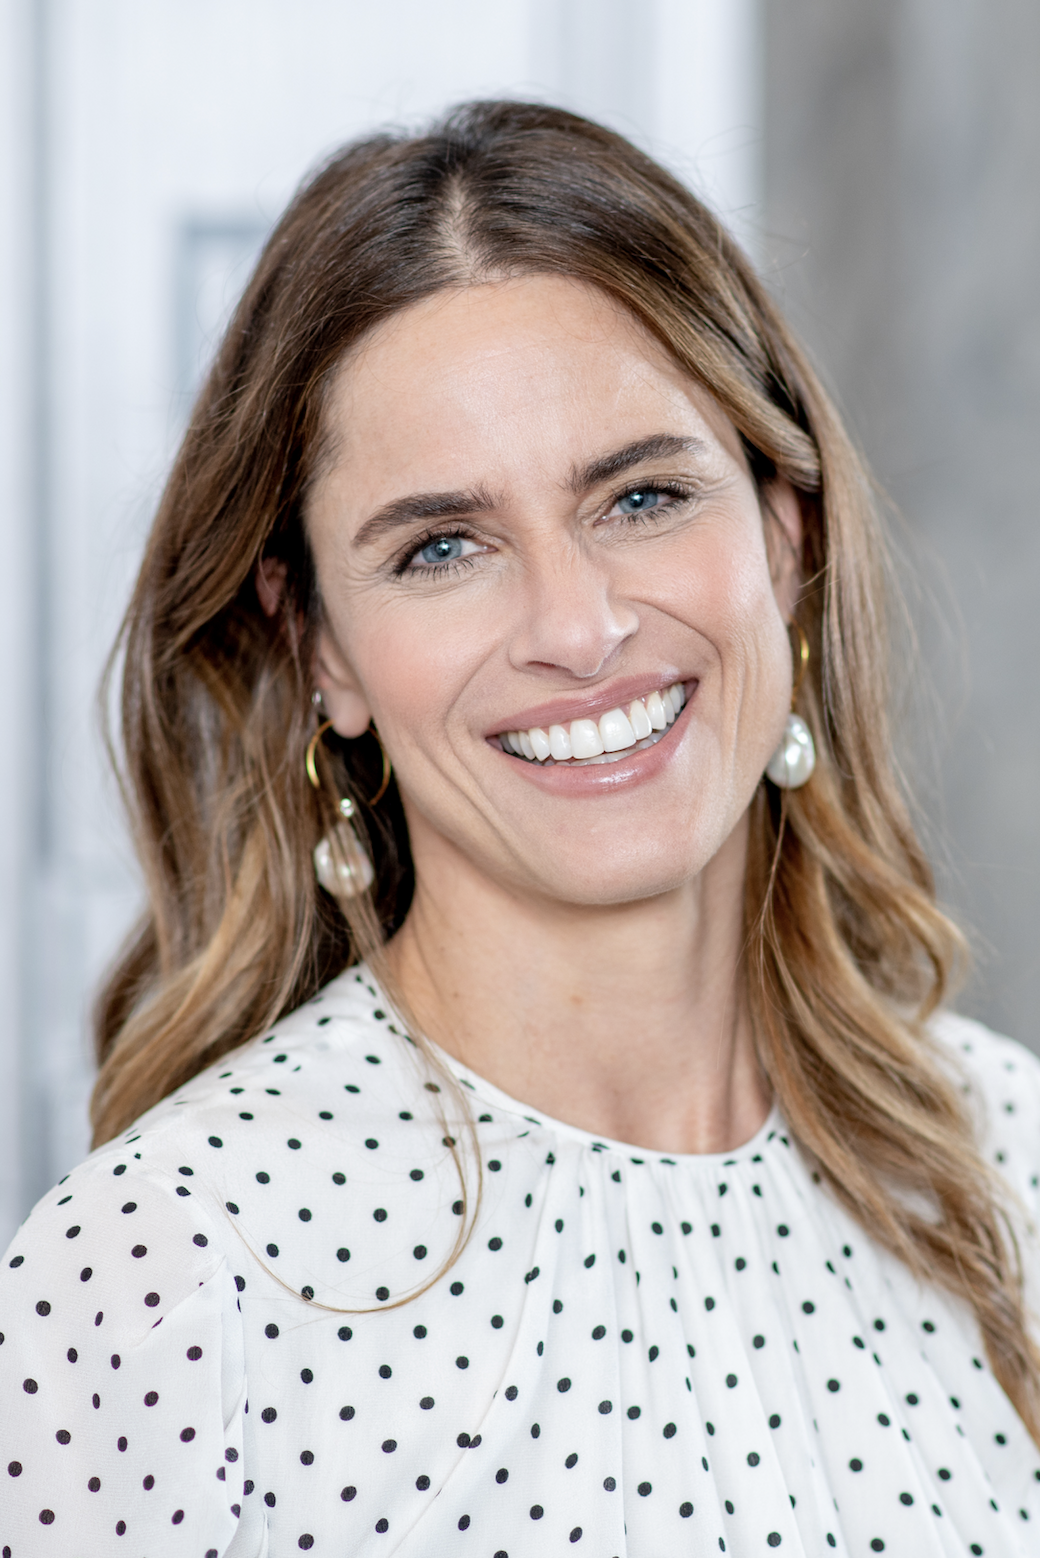 """Amanda Peet Amanda Peet credits being a mom as the reason she's avoided the treatment. """"I've never gotten Botox or fillers,"""" Peet said on SiriusXM's """"Conversations with Maria Menounos ."""" """"I've never done anything to my face that's 'invasive.' I think it has a lot to do with having two girls...I've certainly spent a lot of time and money doing other stuff, and I certainly am vain!"""""""